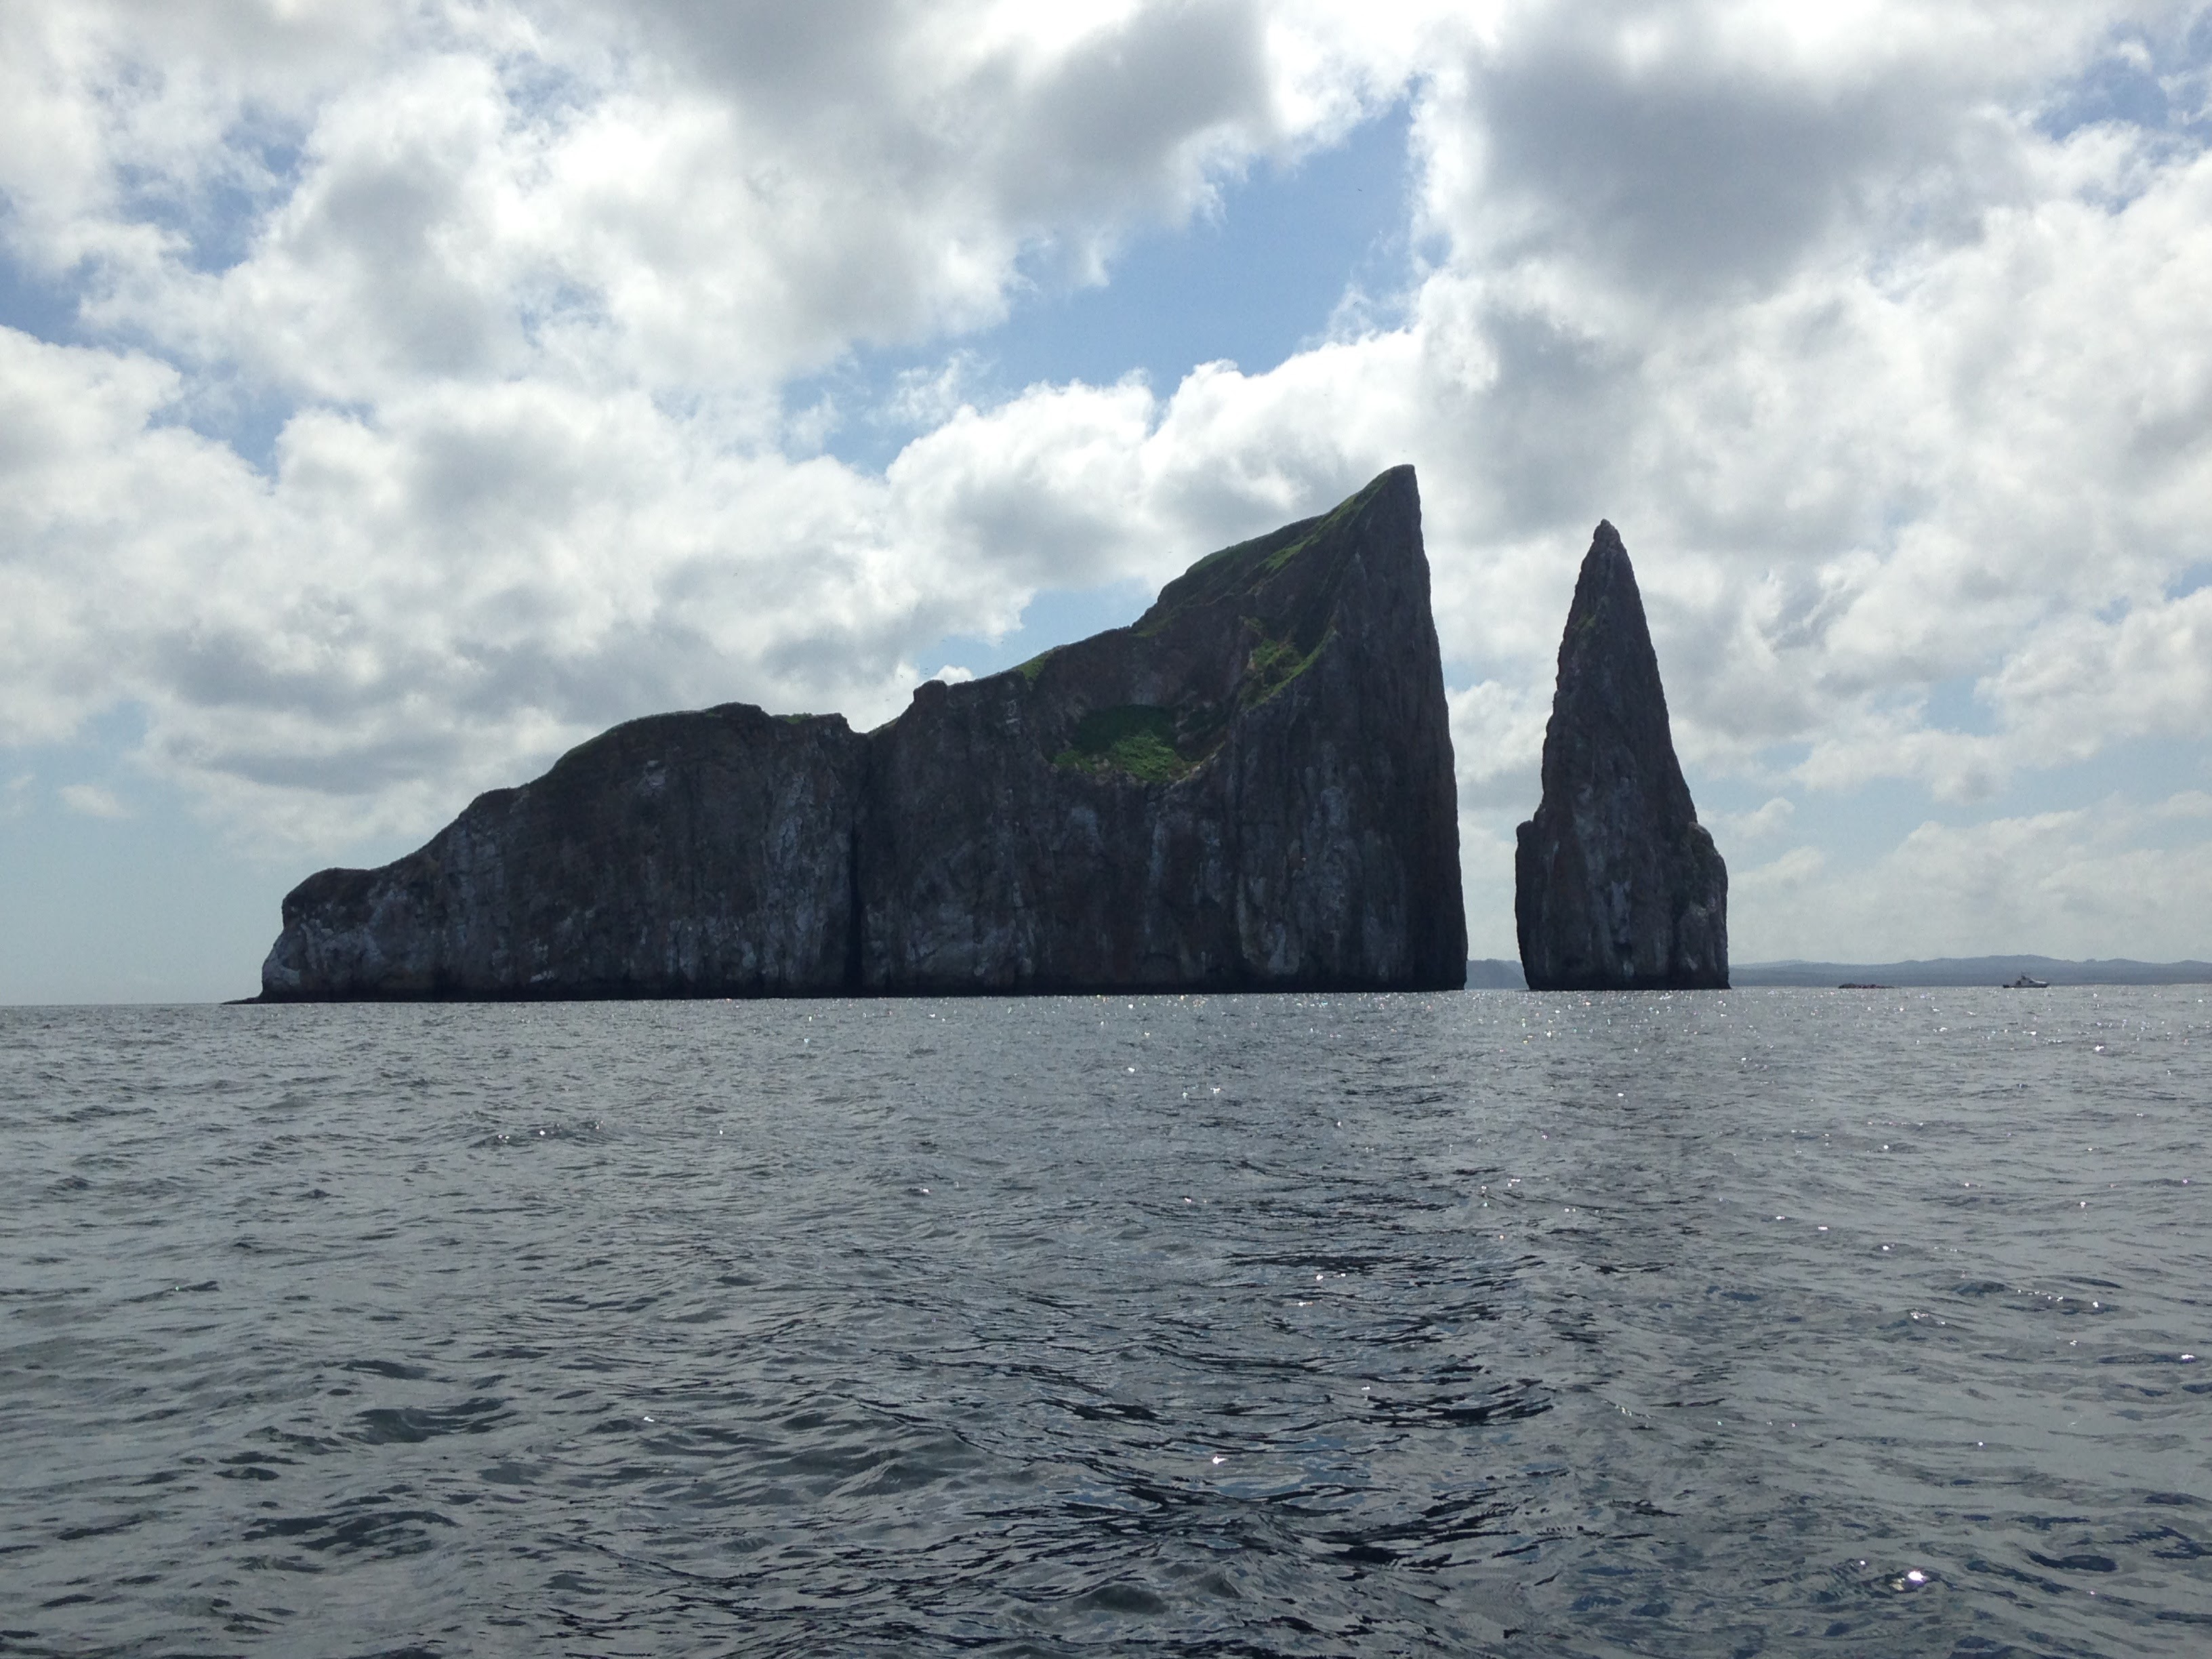 Marine rocks like this one, known as León Dormido or Kicker Rock, make up the Galapagos. Photo: Author